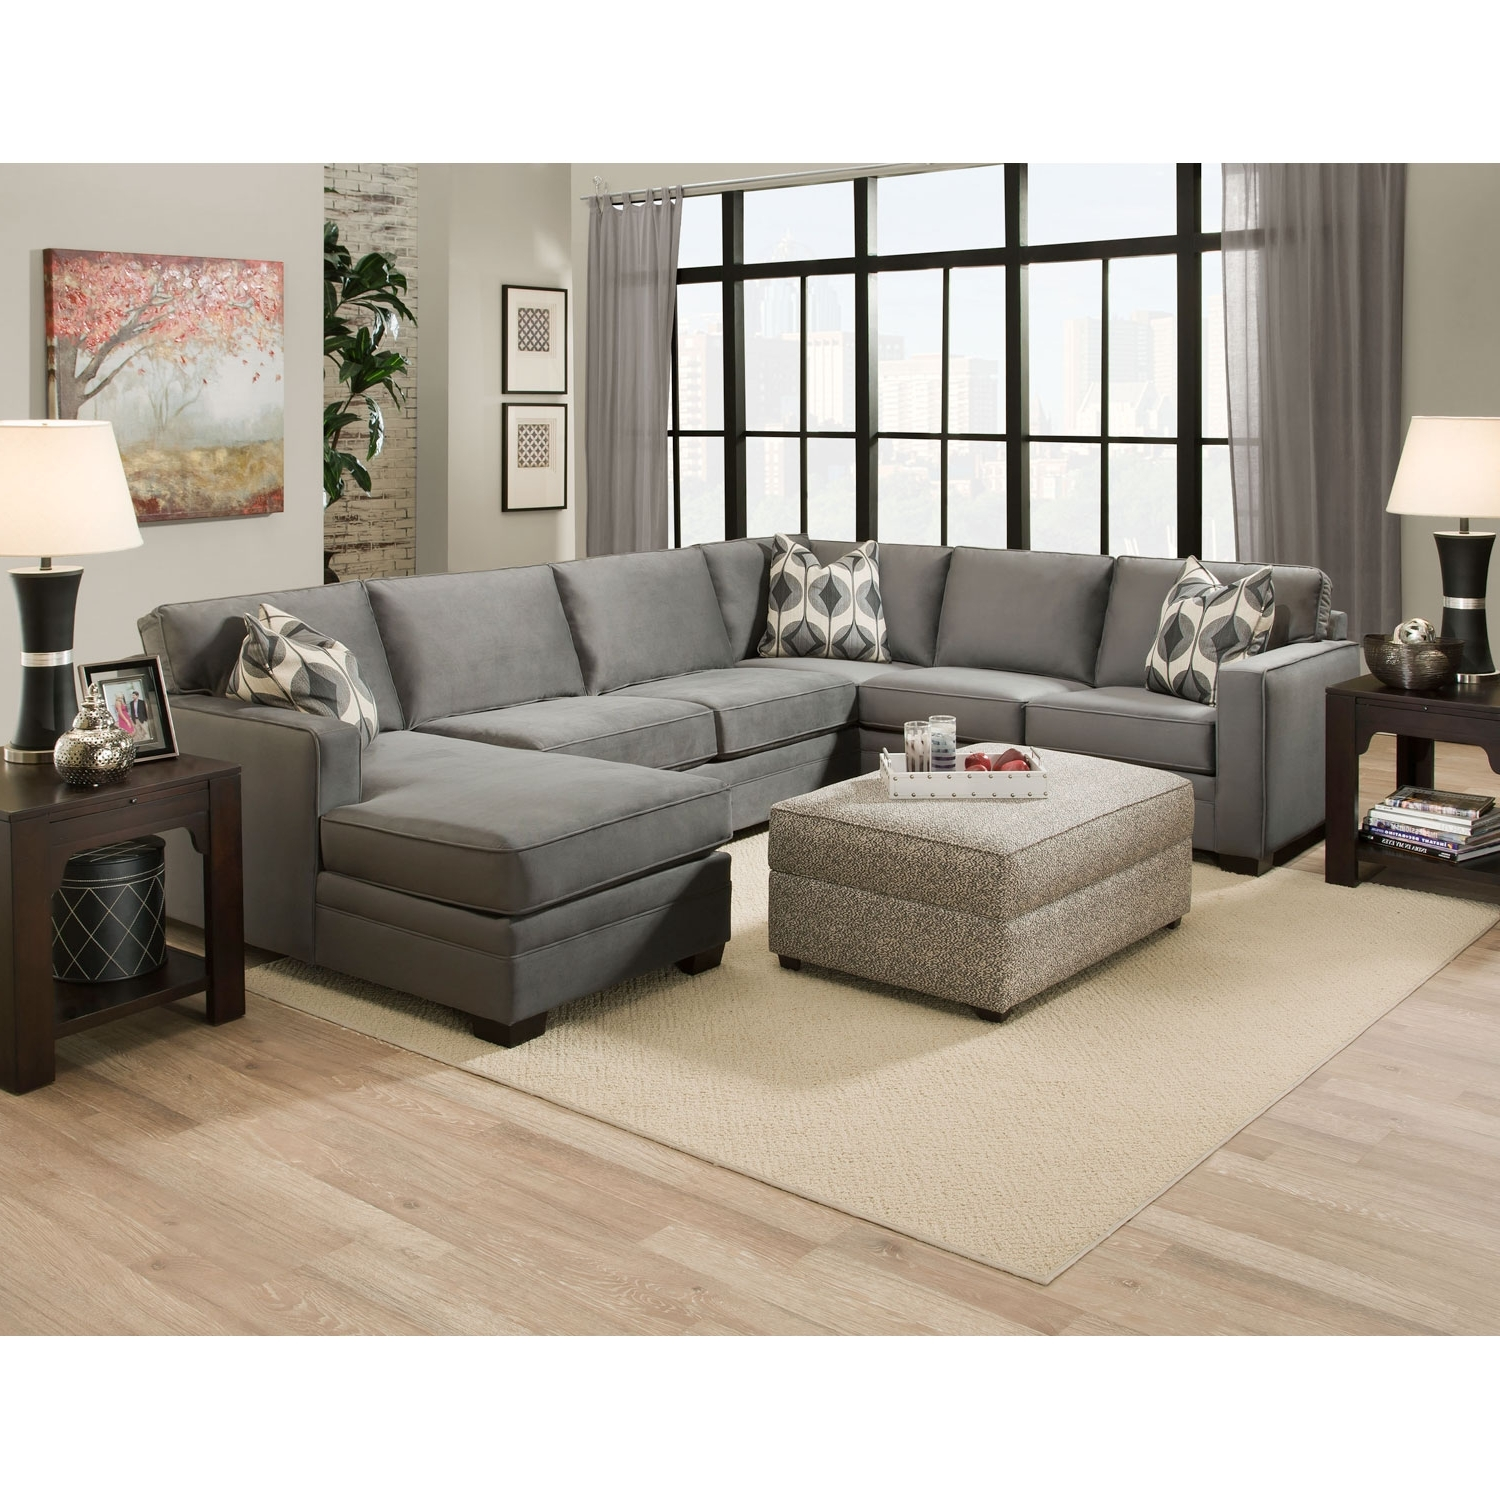 Gray U Shaped Sectionals Pertaining To Popular Gray Extra Large U Shaped Sectional Sofa With Chaise And Accent (Gallery 13 of 20)